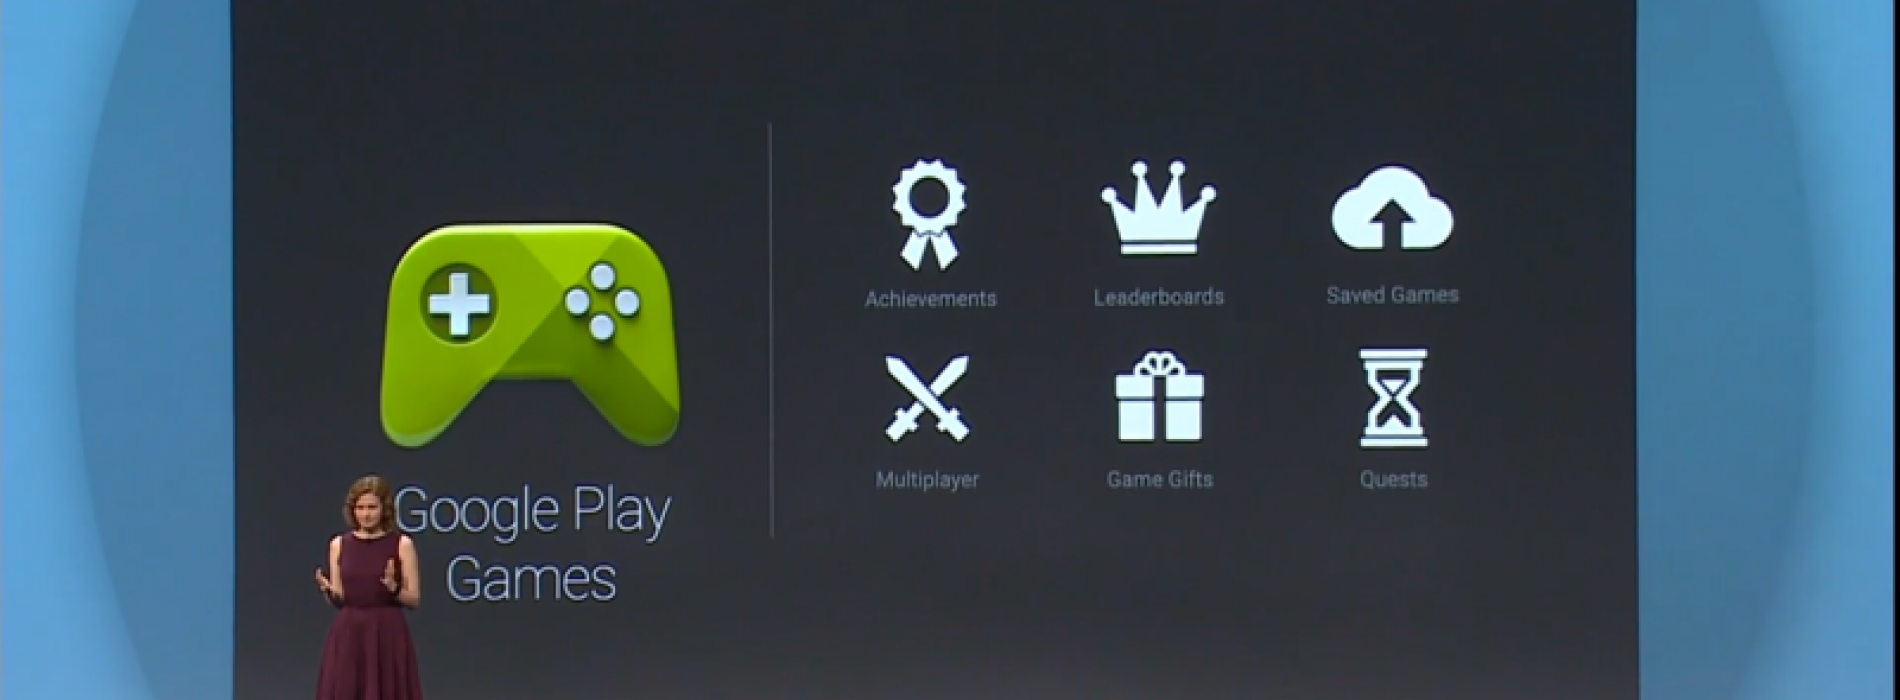 Google Play Games gets new features at Google I/O